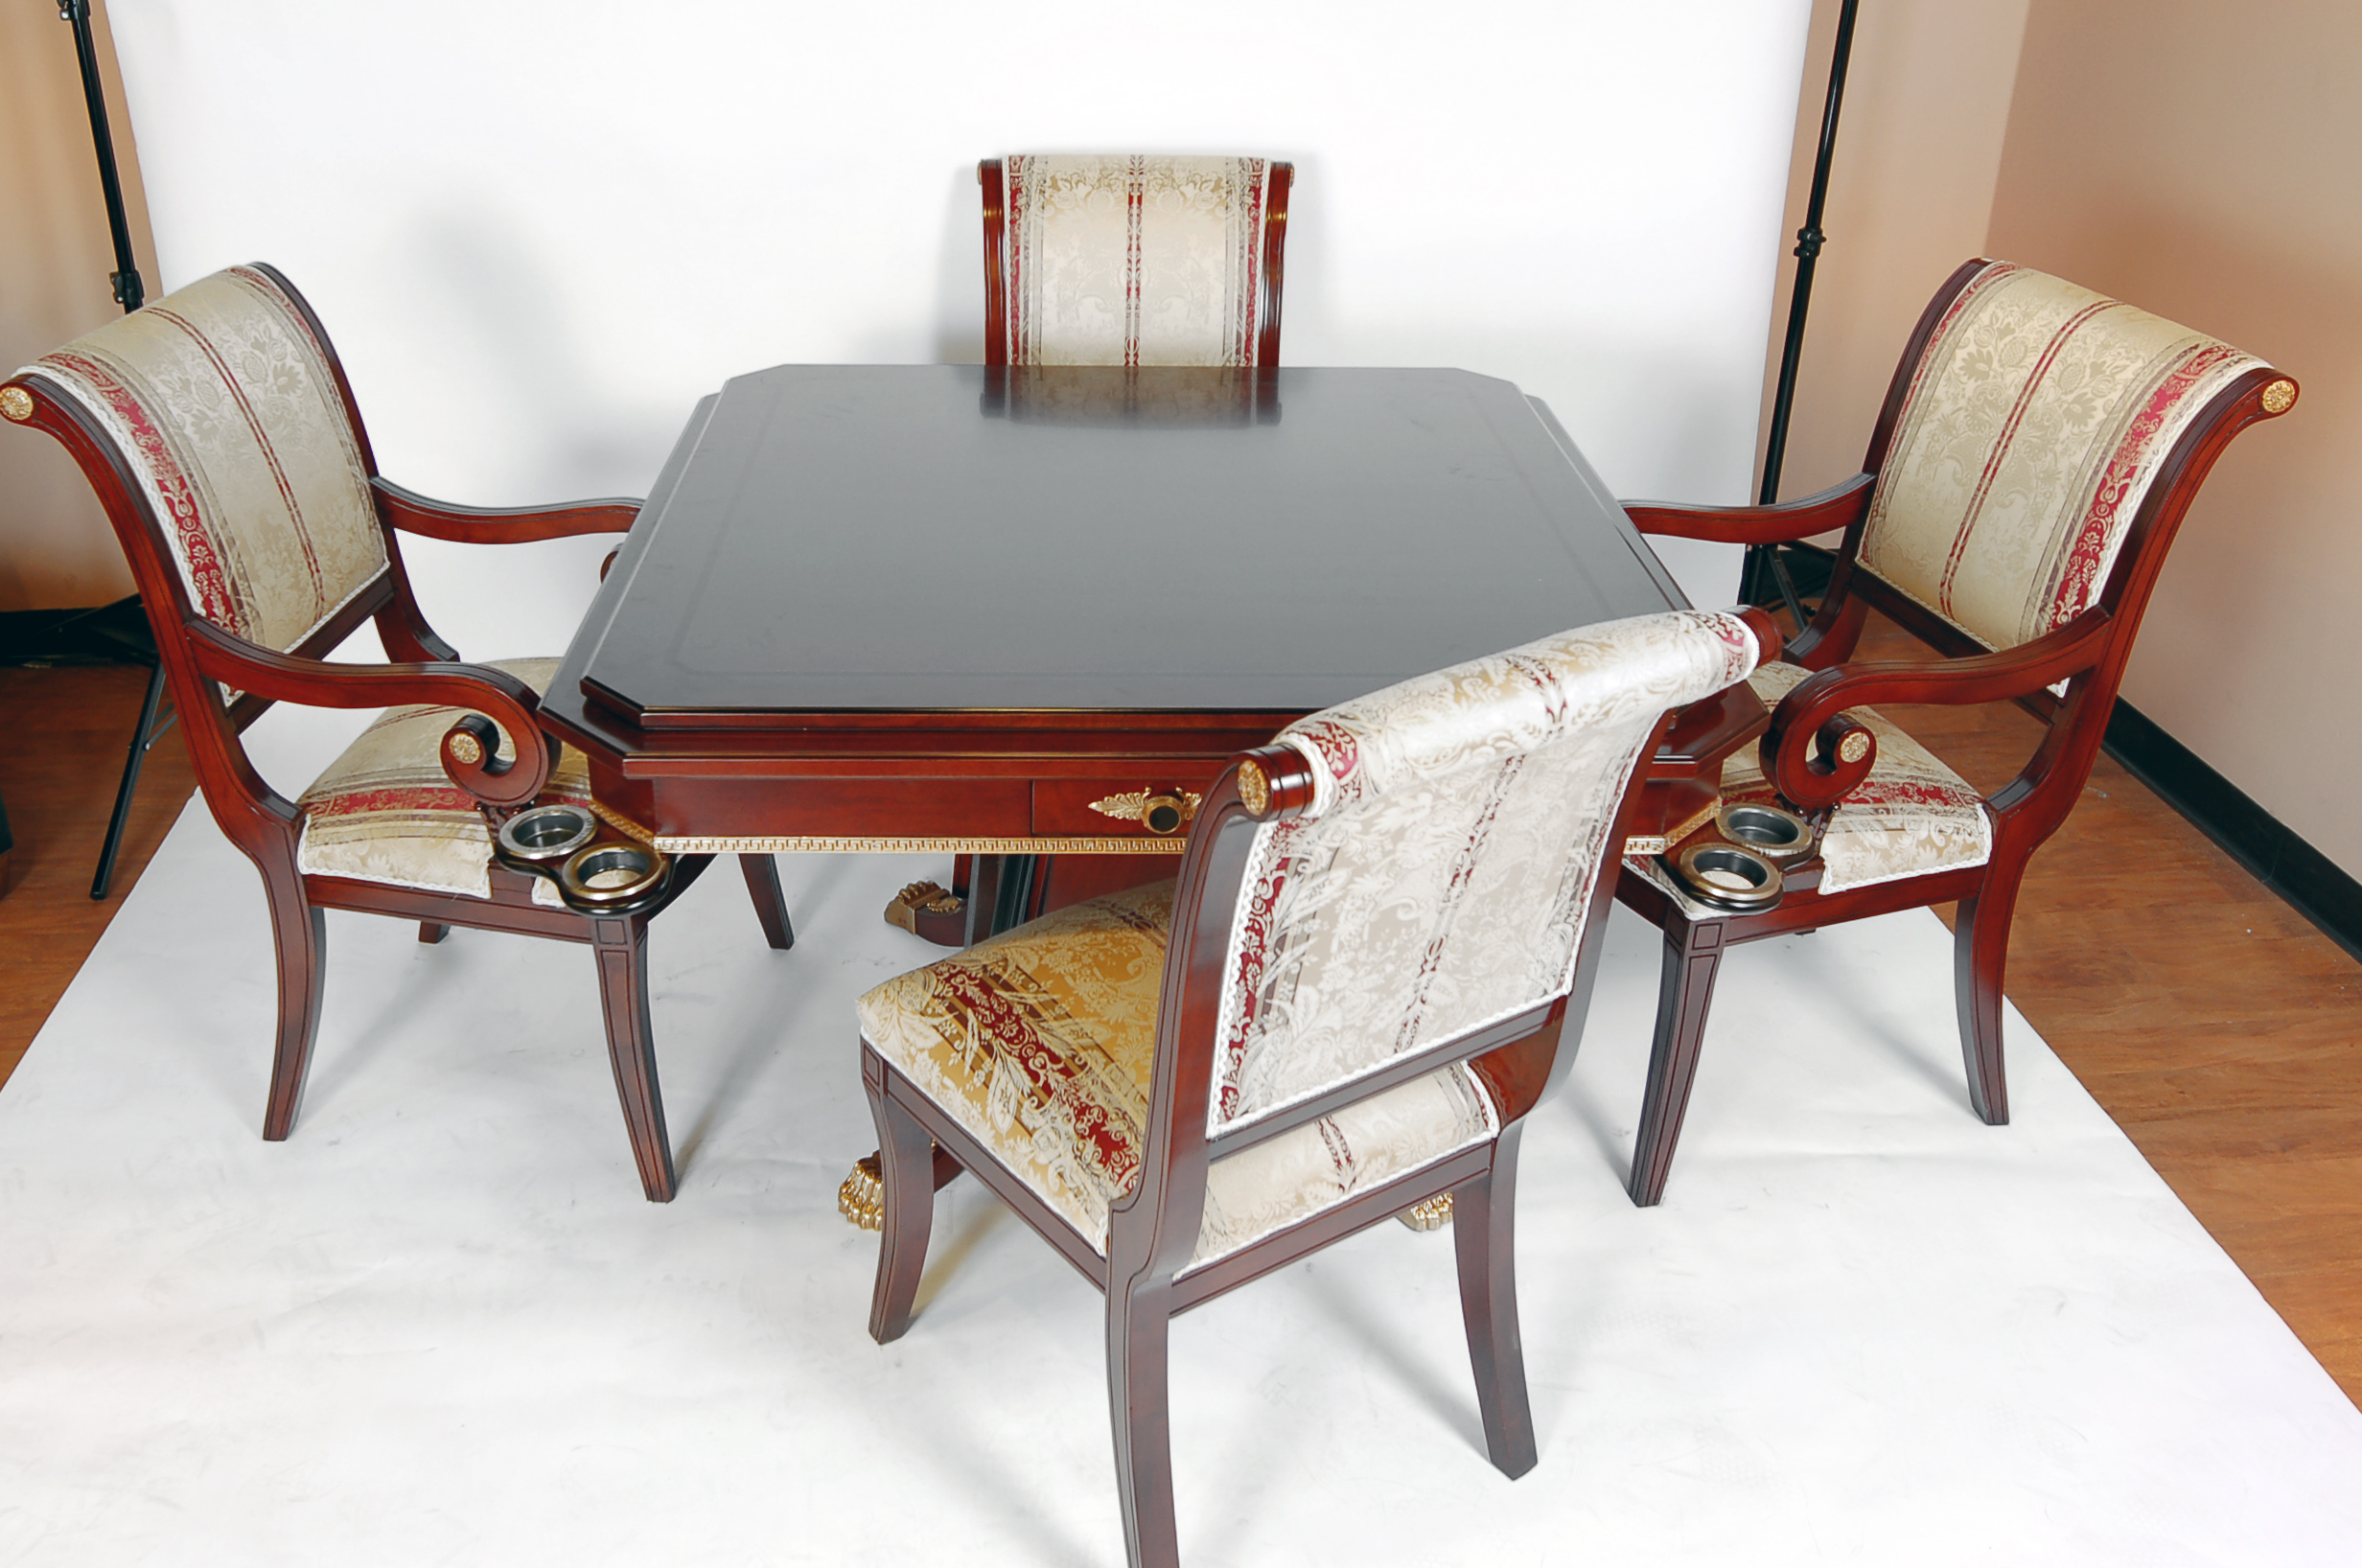 Rosewood Game Table and Four Chairs Set | eBay